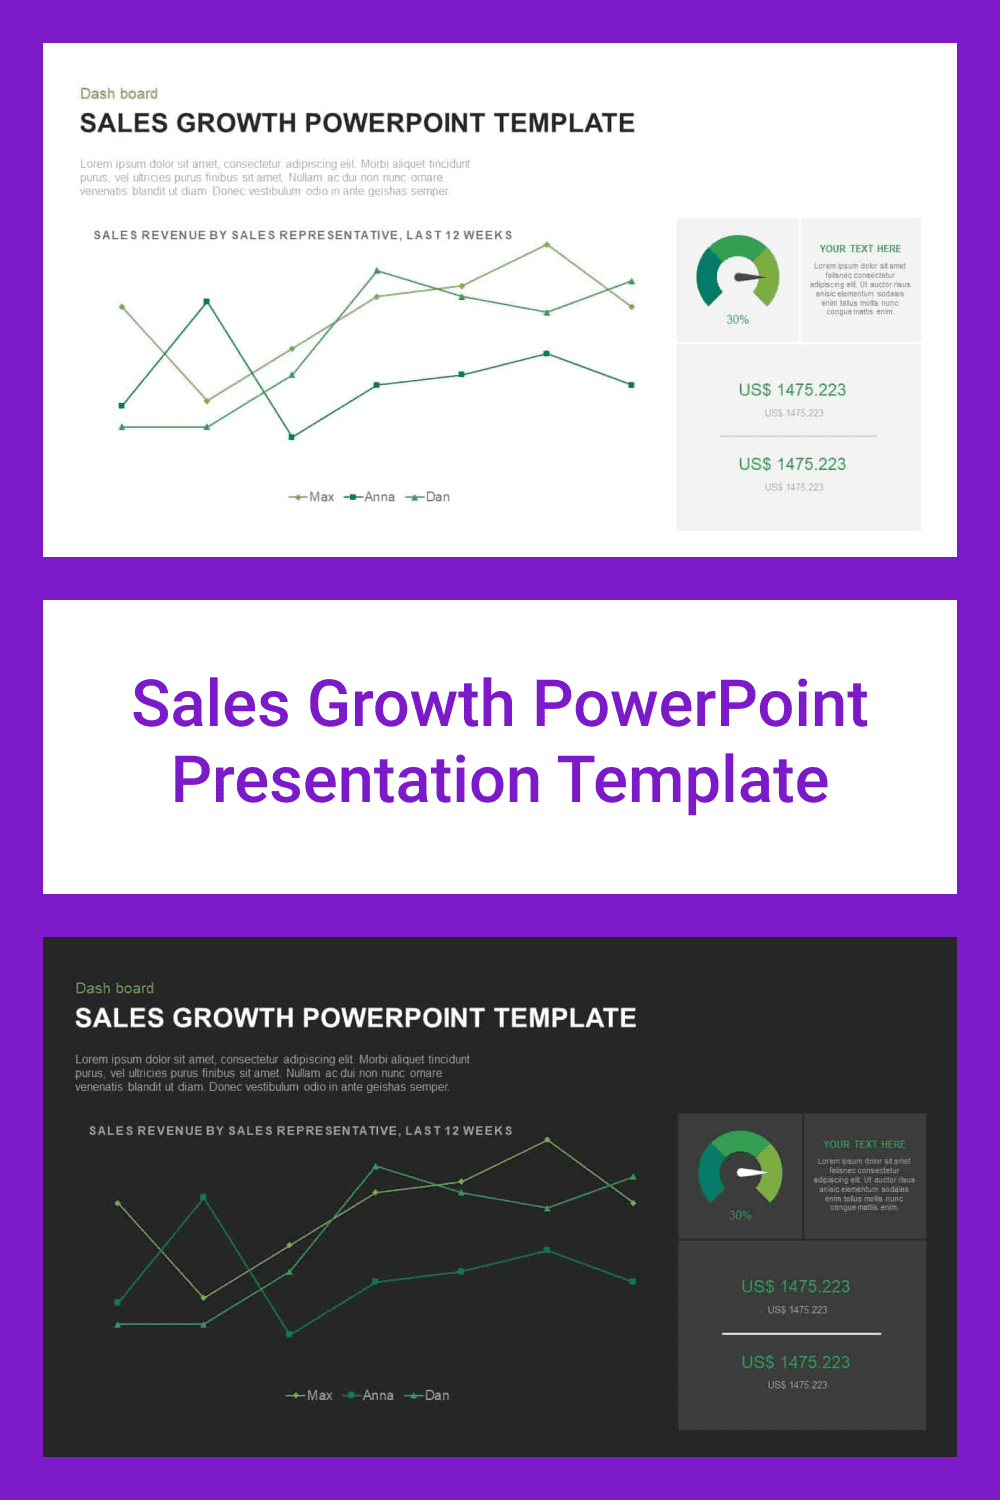 Sales Growth PowerPoint Presentation Template.